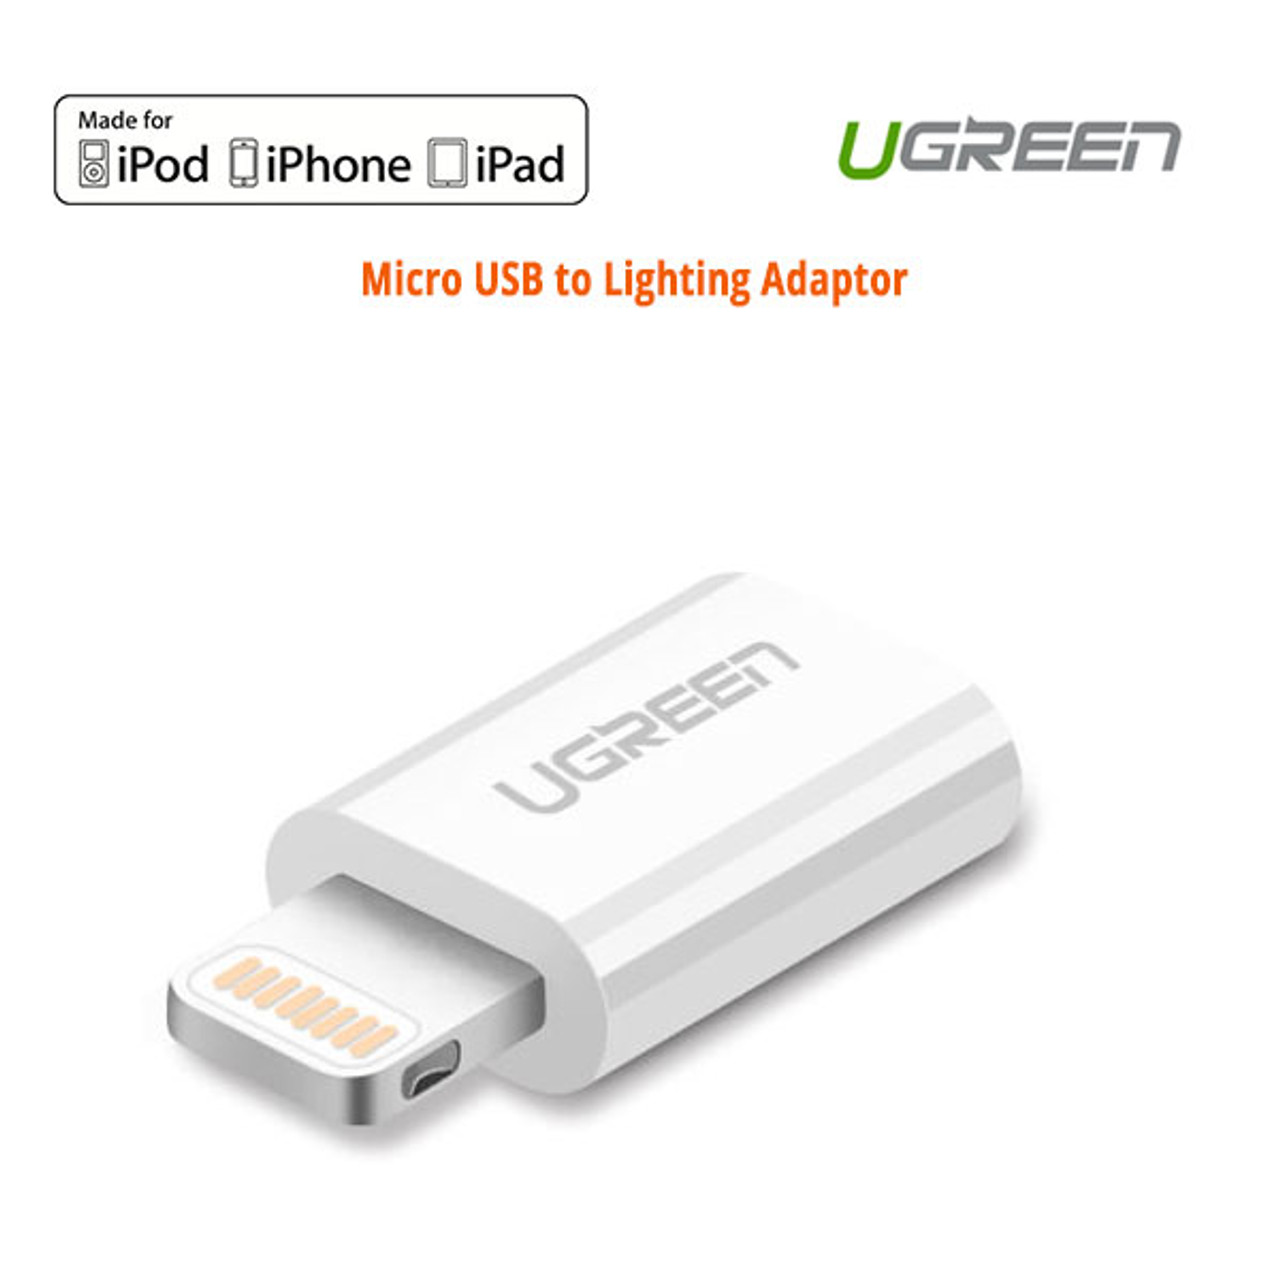 Product image for UGreen 20745 Micro USB to Lighting Adaptor   CX Computer Superstore